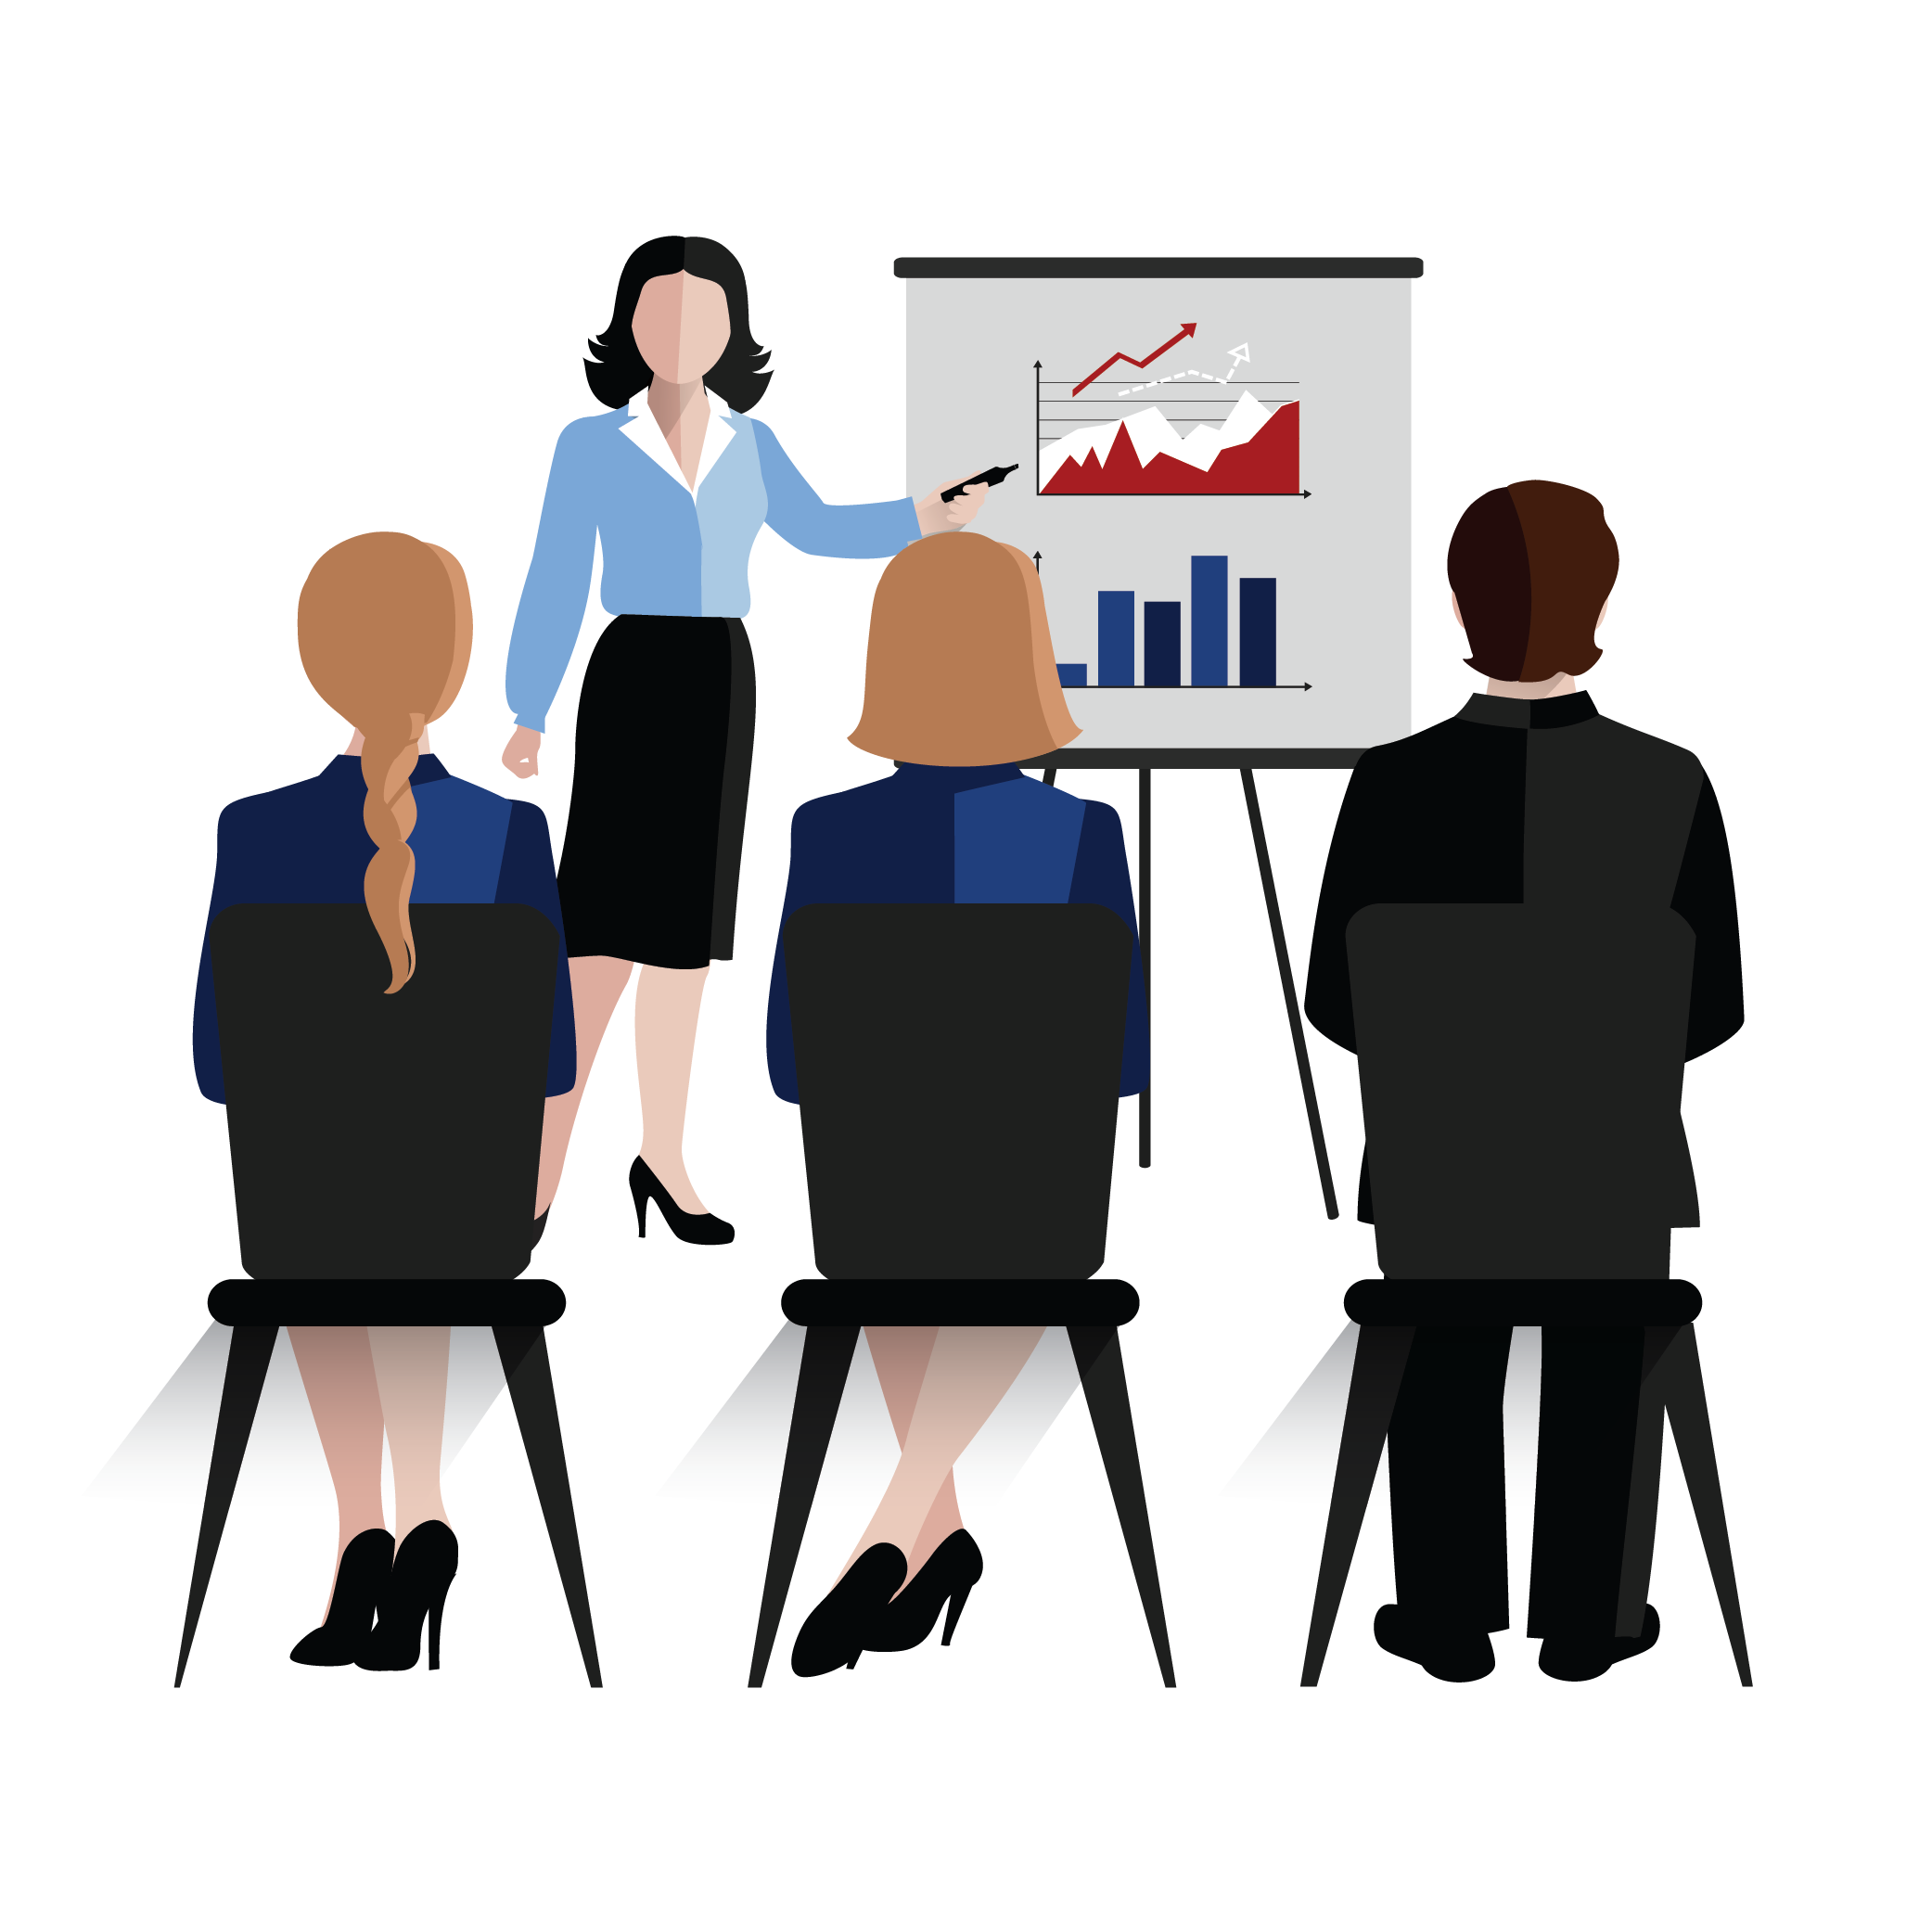 A Sales head of an organization presenting the sales statistics to her three team members